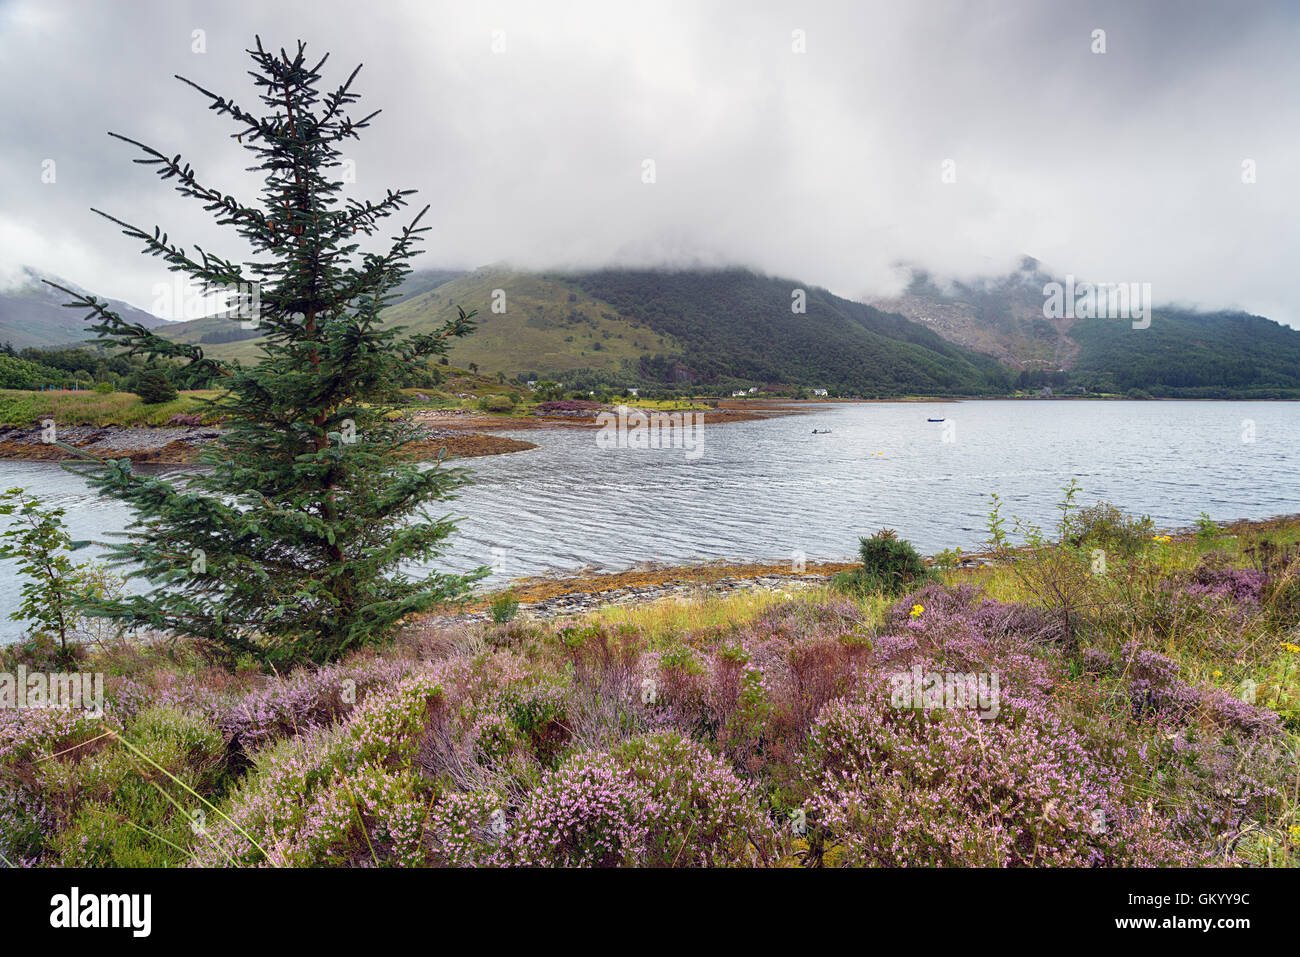 A rainy day at Loch Leven near Glencoe in the Scottish Highlands - Stock Image